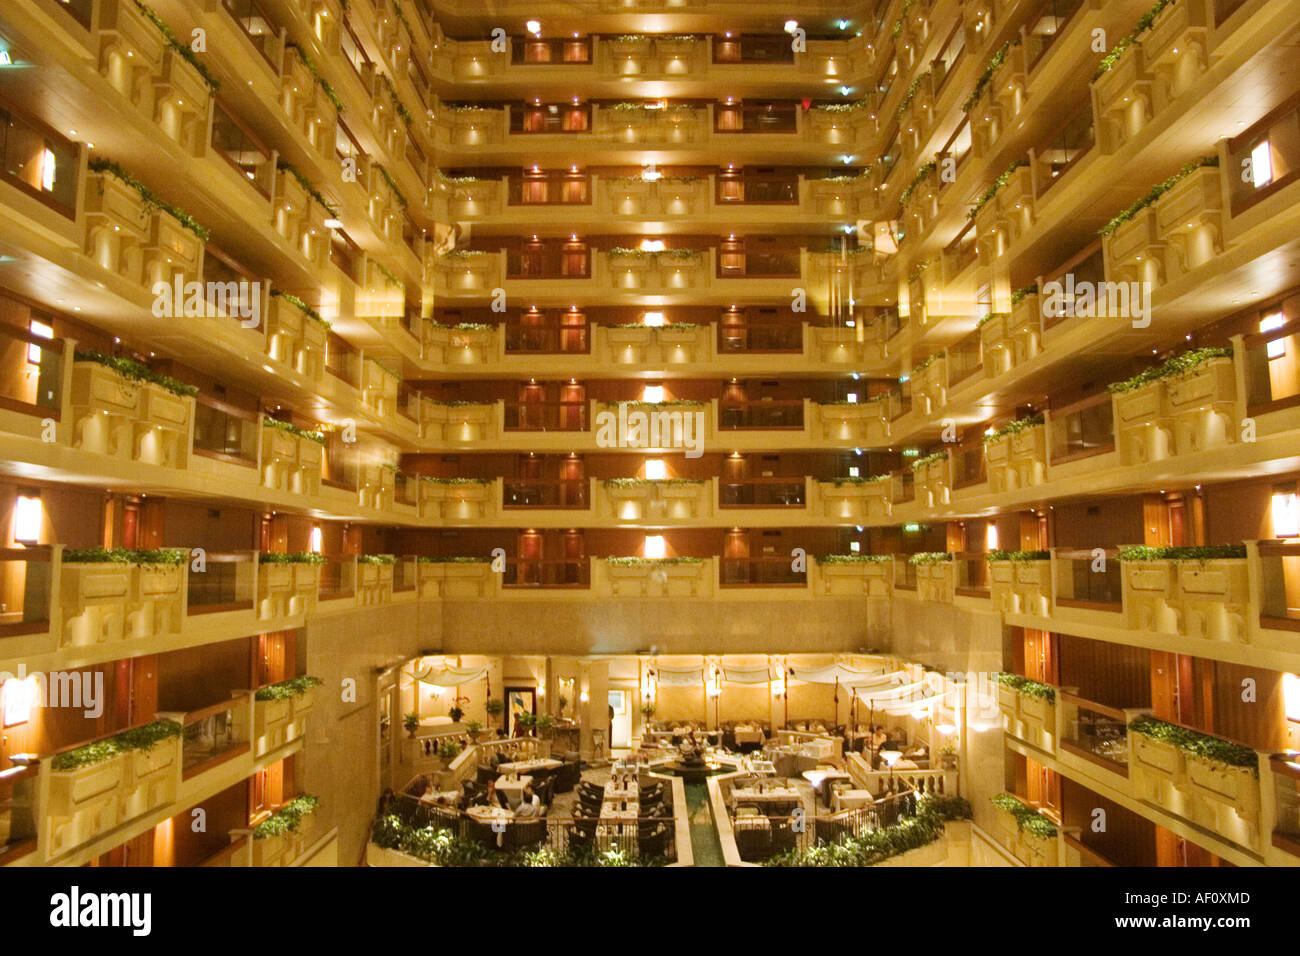 Exceptional Interior Balconies In The Atrium At Hong Kong S Famous Royal Garden Hotel. Amazing Ideas